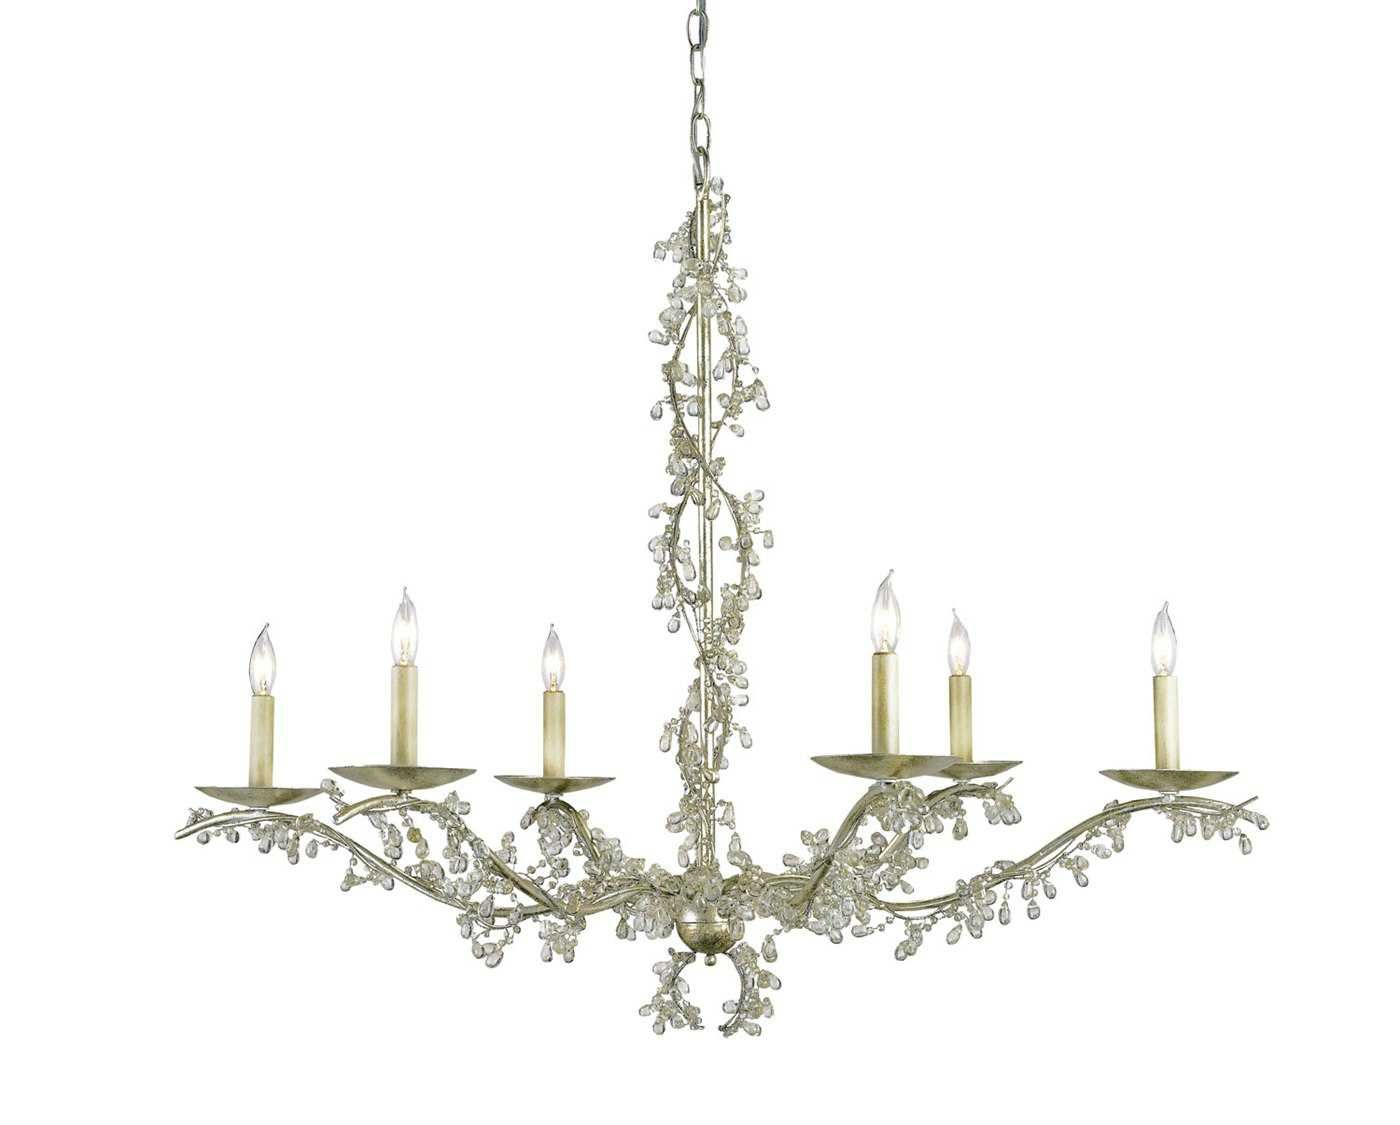 Currey And Company Lighting Currey Chandeliers Sale Chandelier Lighting Large Chandeliers Chandelier